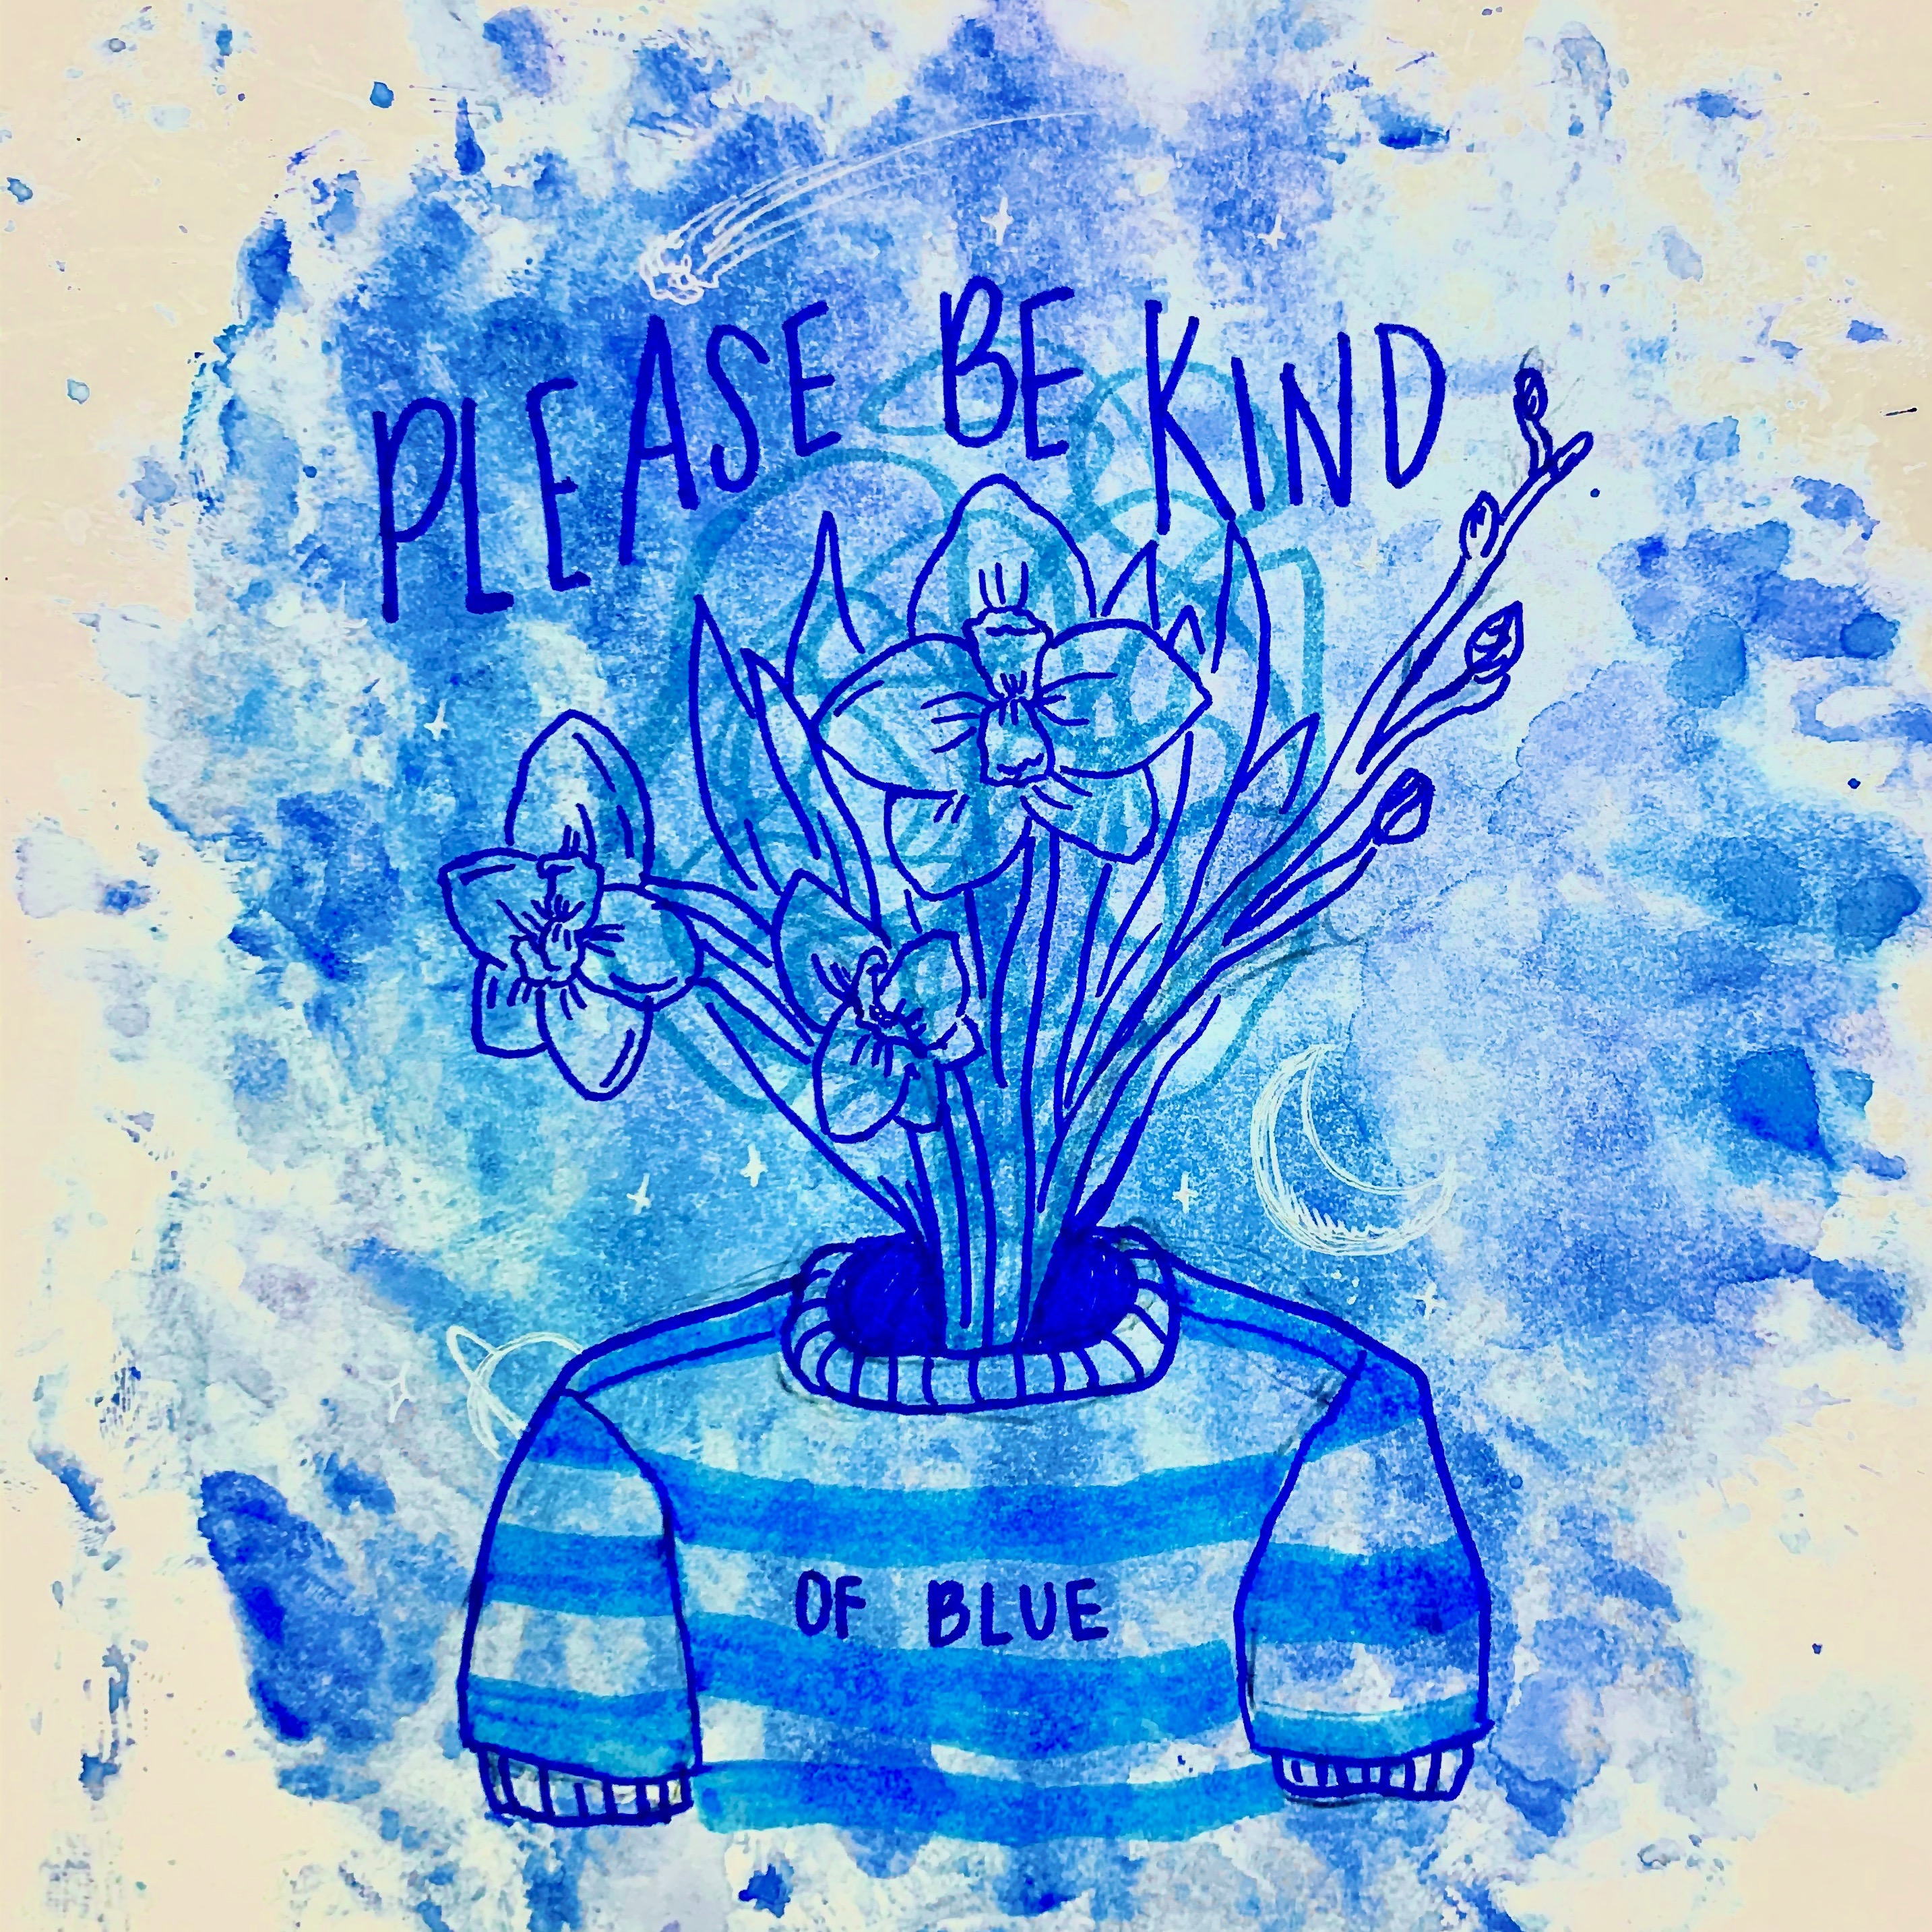 [KPR003] Please Be Kind - Of Blue EP